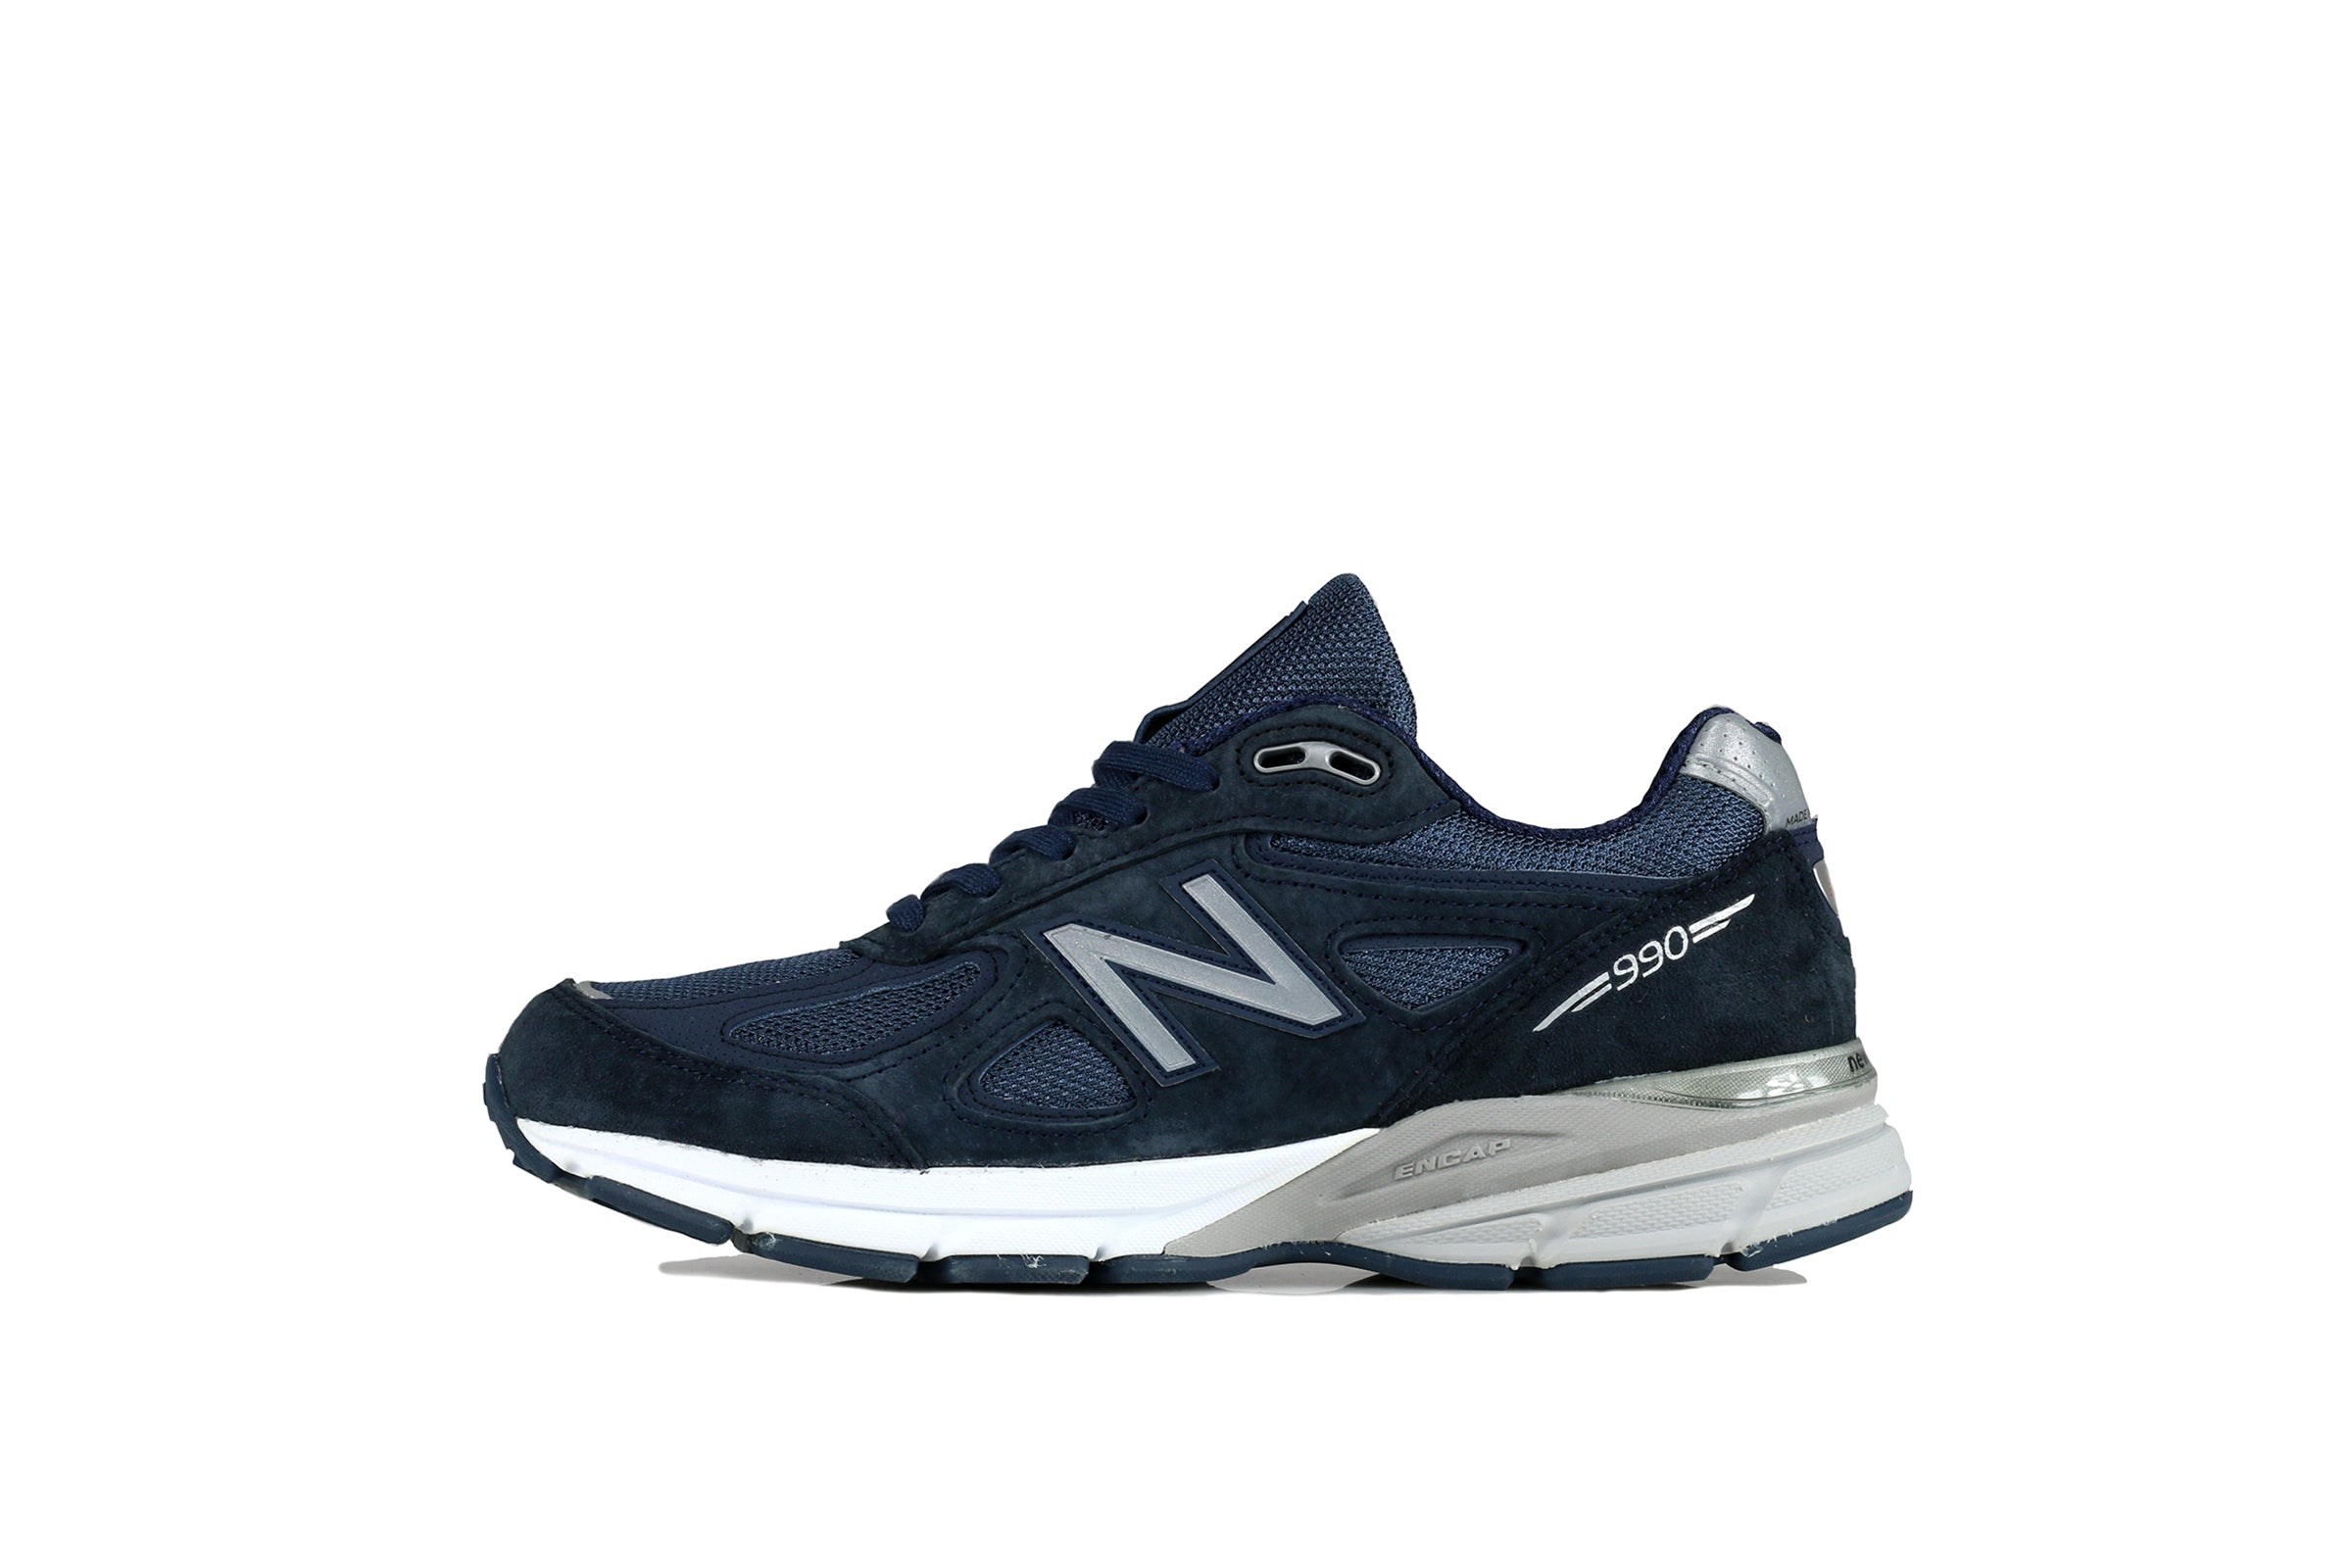 official photos 83fe7 5db86 coupon code for newest new balance 990 d9fac 844bb